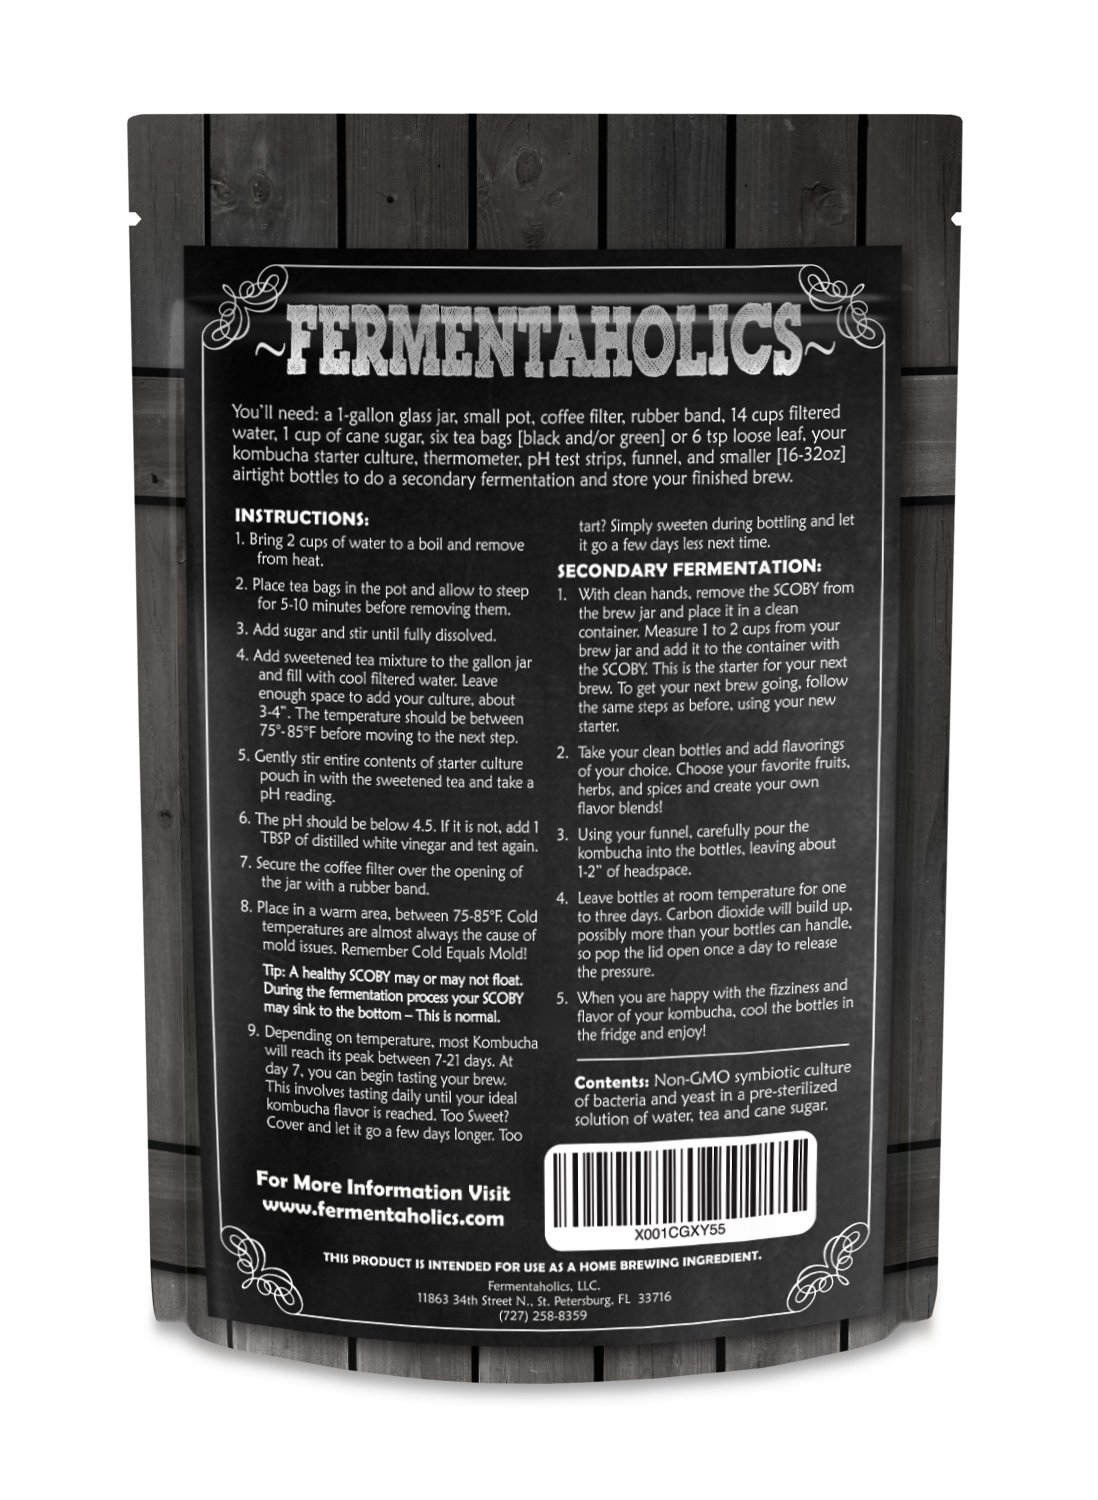 Fermentaholics Kombucha SCOBY (starter culture) + 1-Gallon Glass Fermenting Jar with Breathable Cover + Rubber Band + Adhesive Thermometer - Brew kombucha at Home - Detailed Instructions Included by Fermentaholics (Image #3)